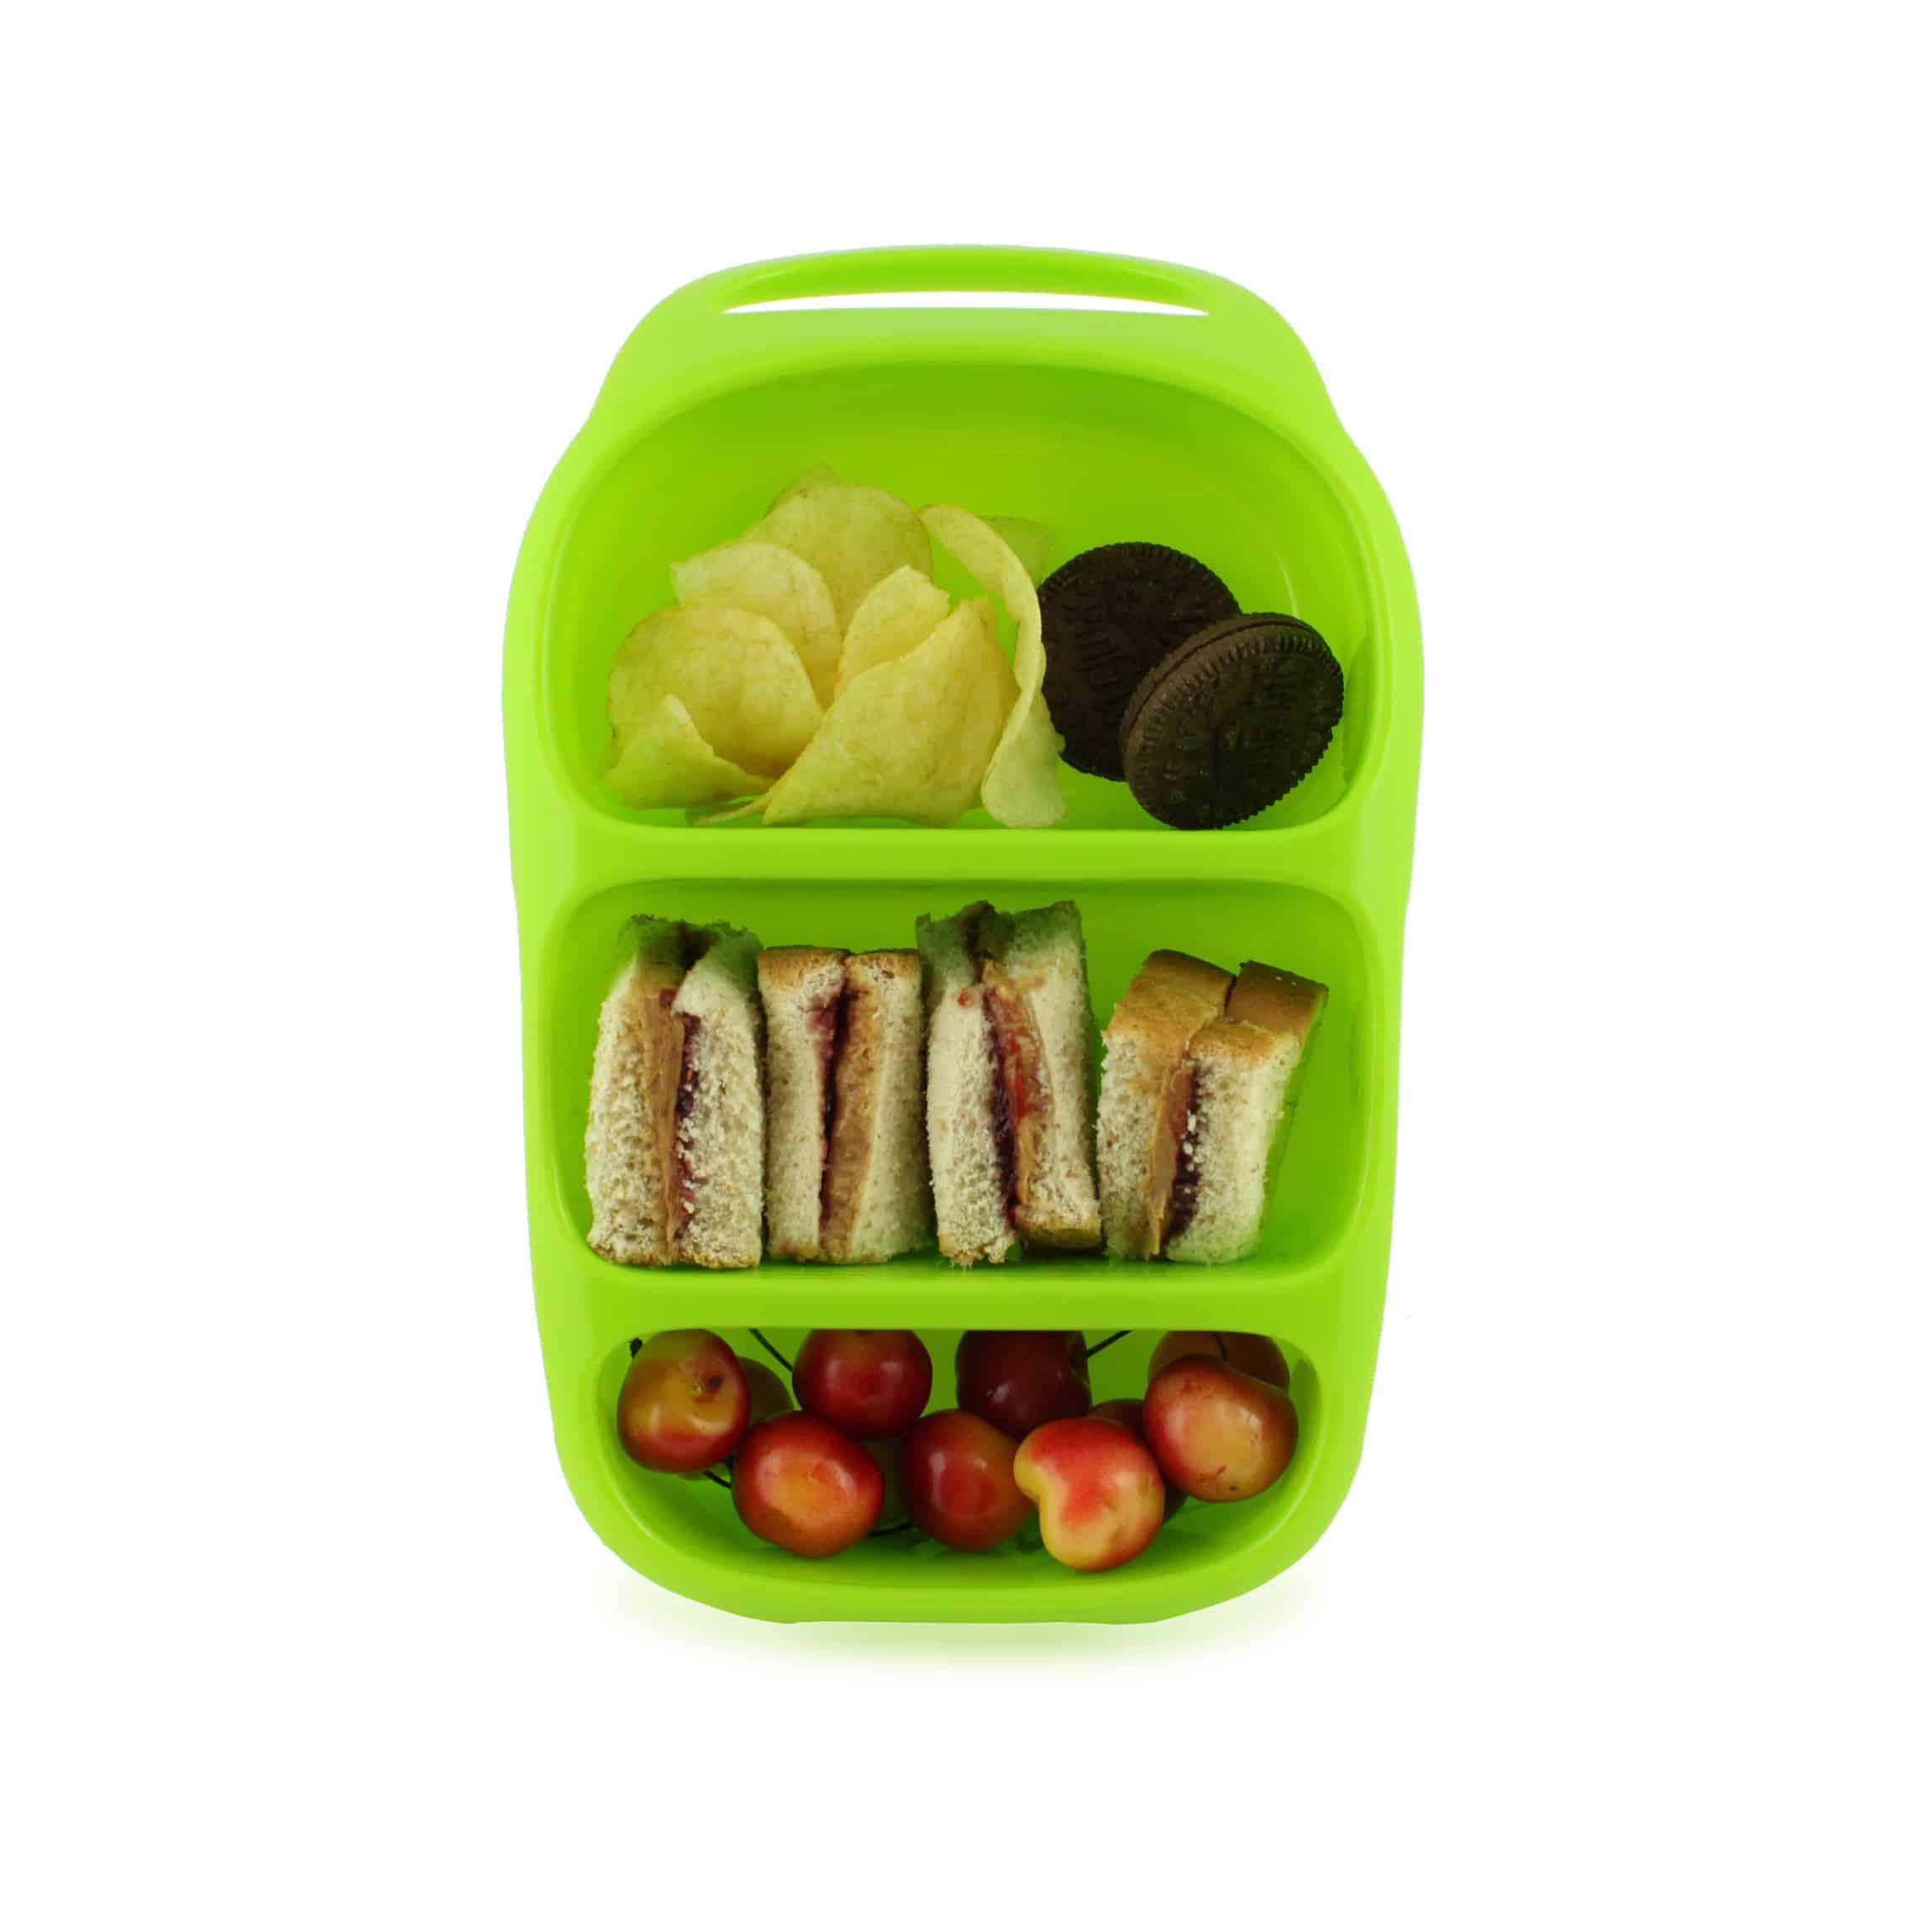 goodbyn bynto lunch box green eats amazing. Black Bedroom Furniture Sets. Home Design Ideas